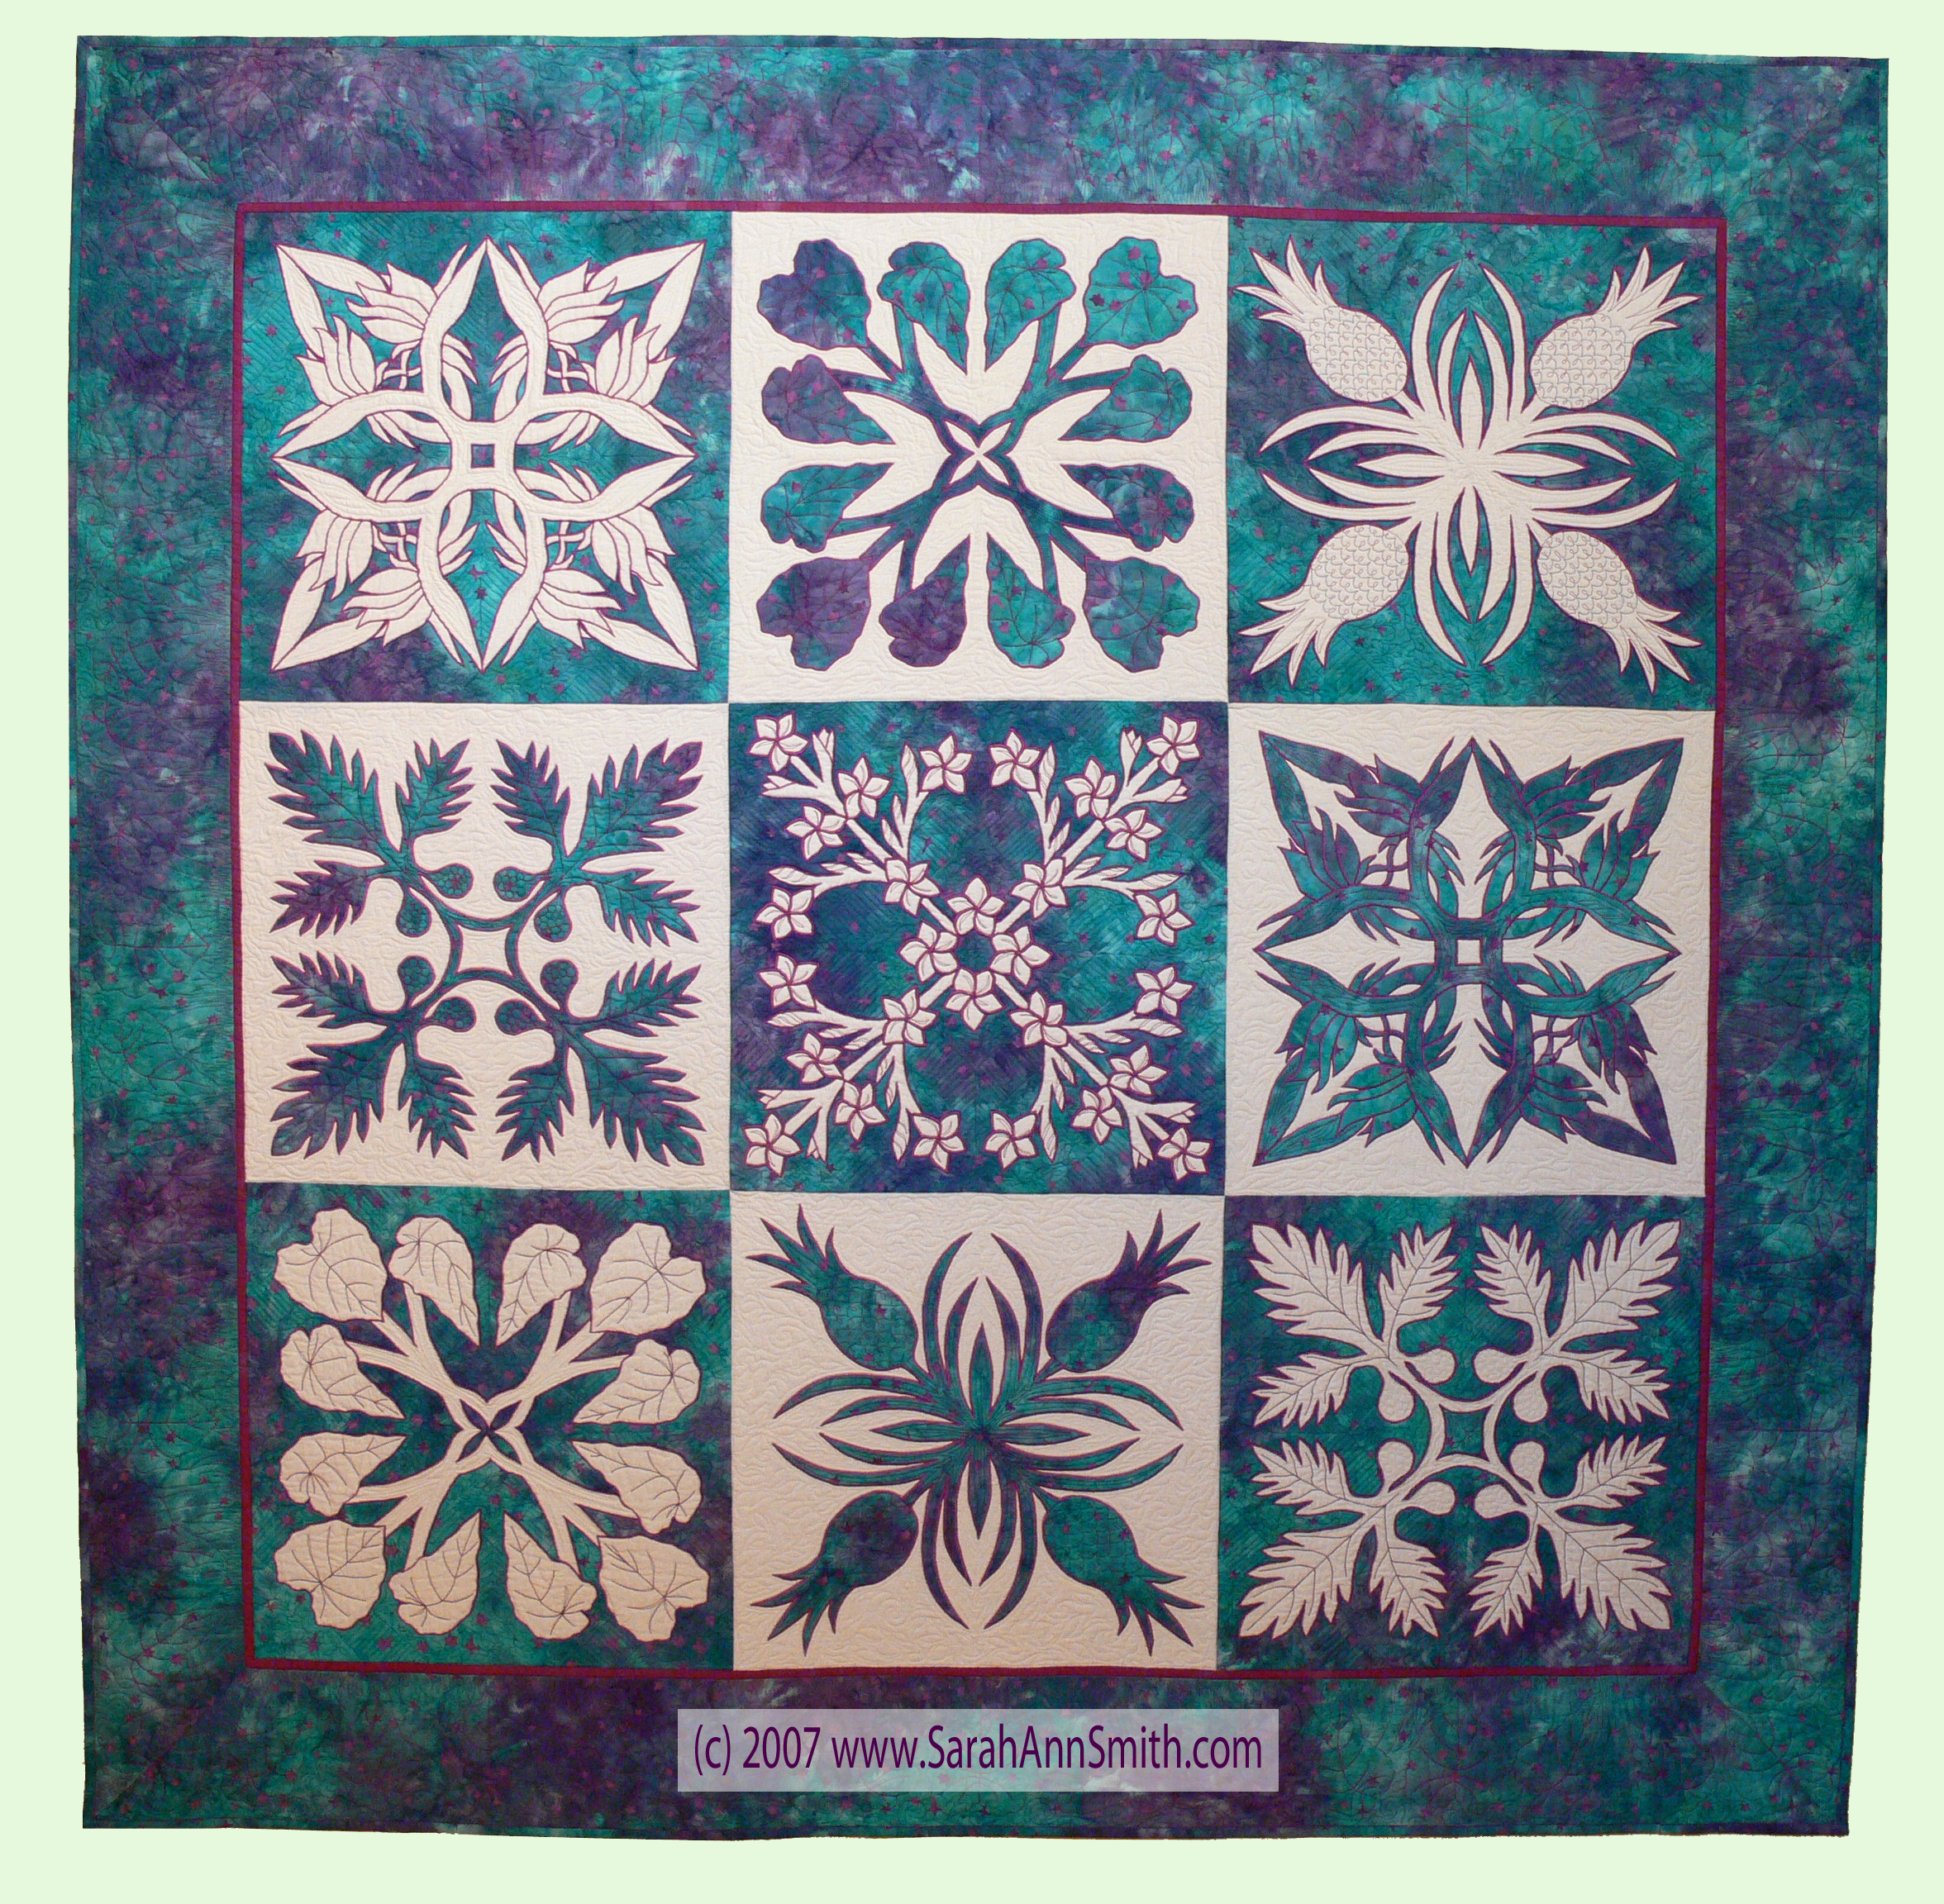 quilts smith quilt com category sunnydayquiltingandembroidery b